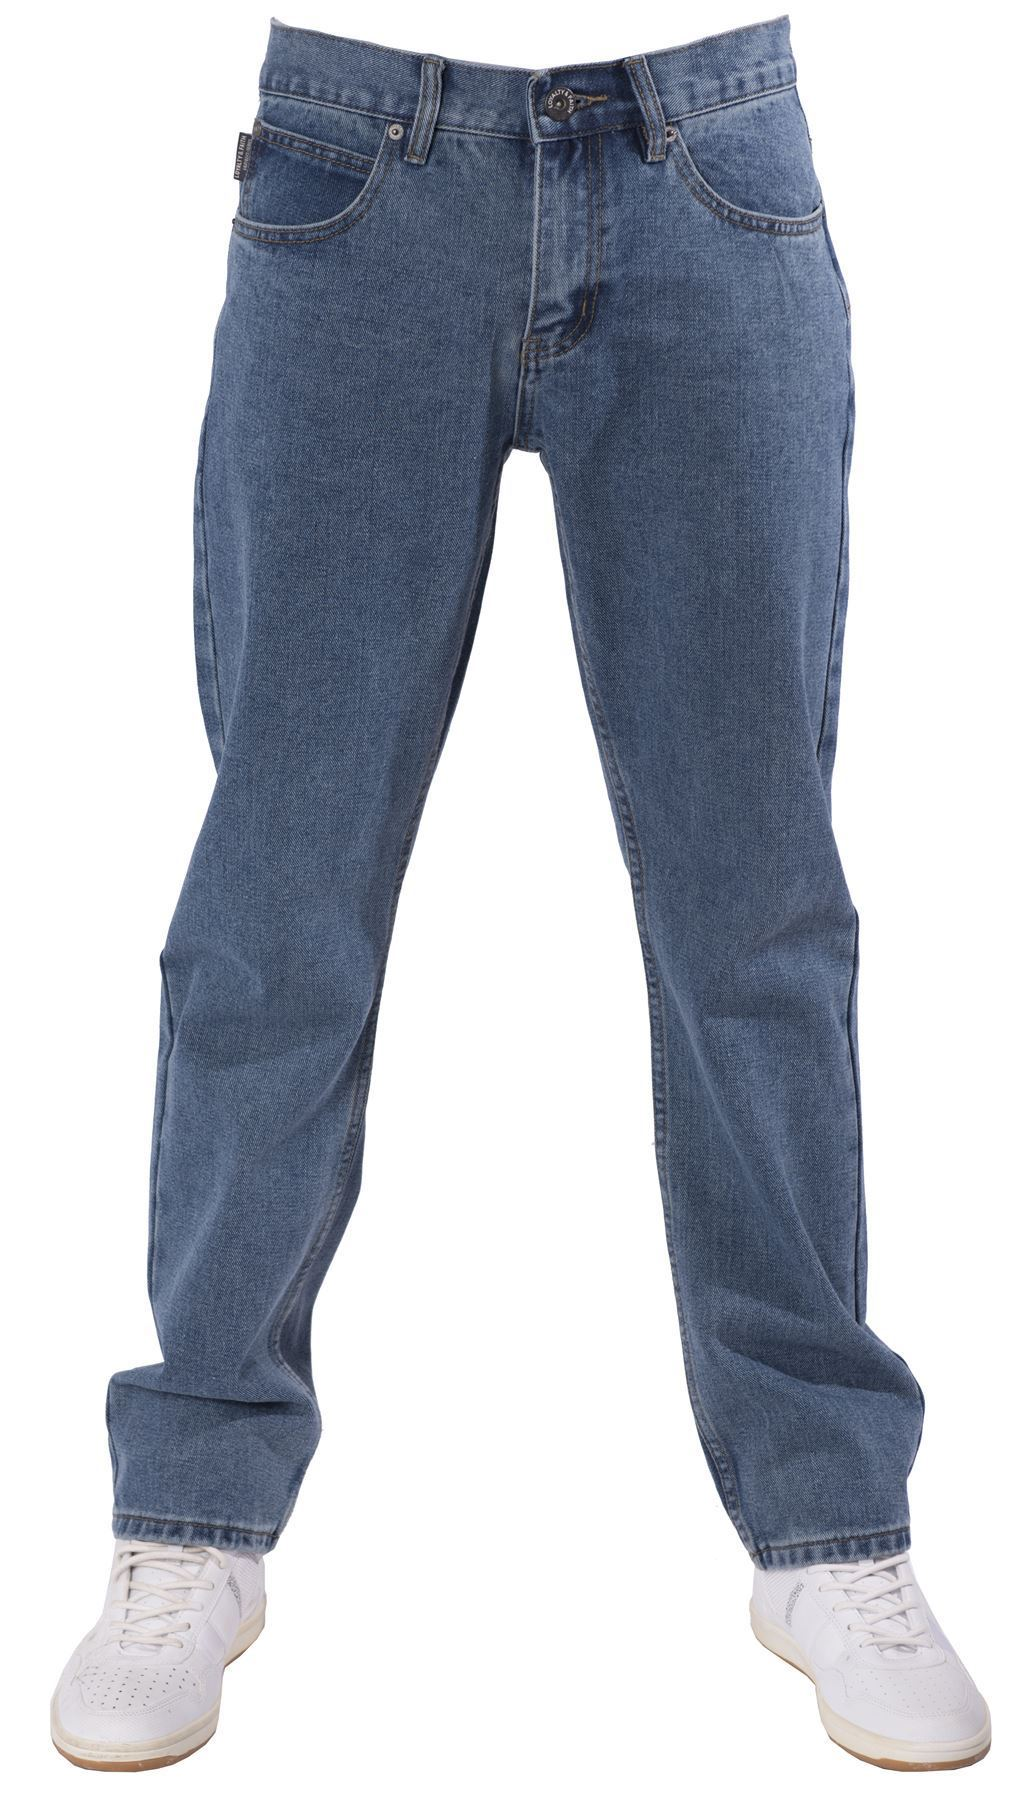 Shopping Broken Holes Plain Jeans online with high-quality and best prices Jeans at Luvyle.